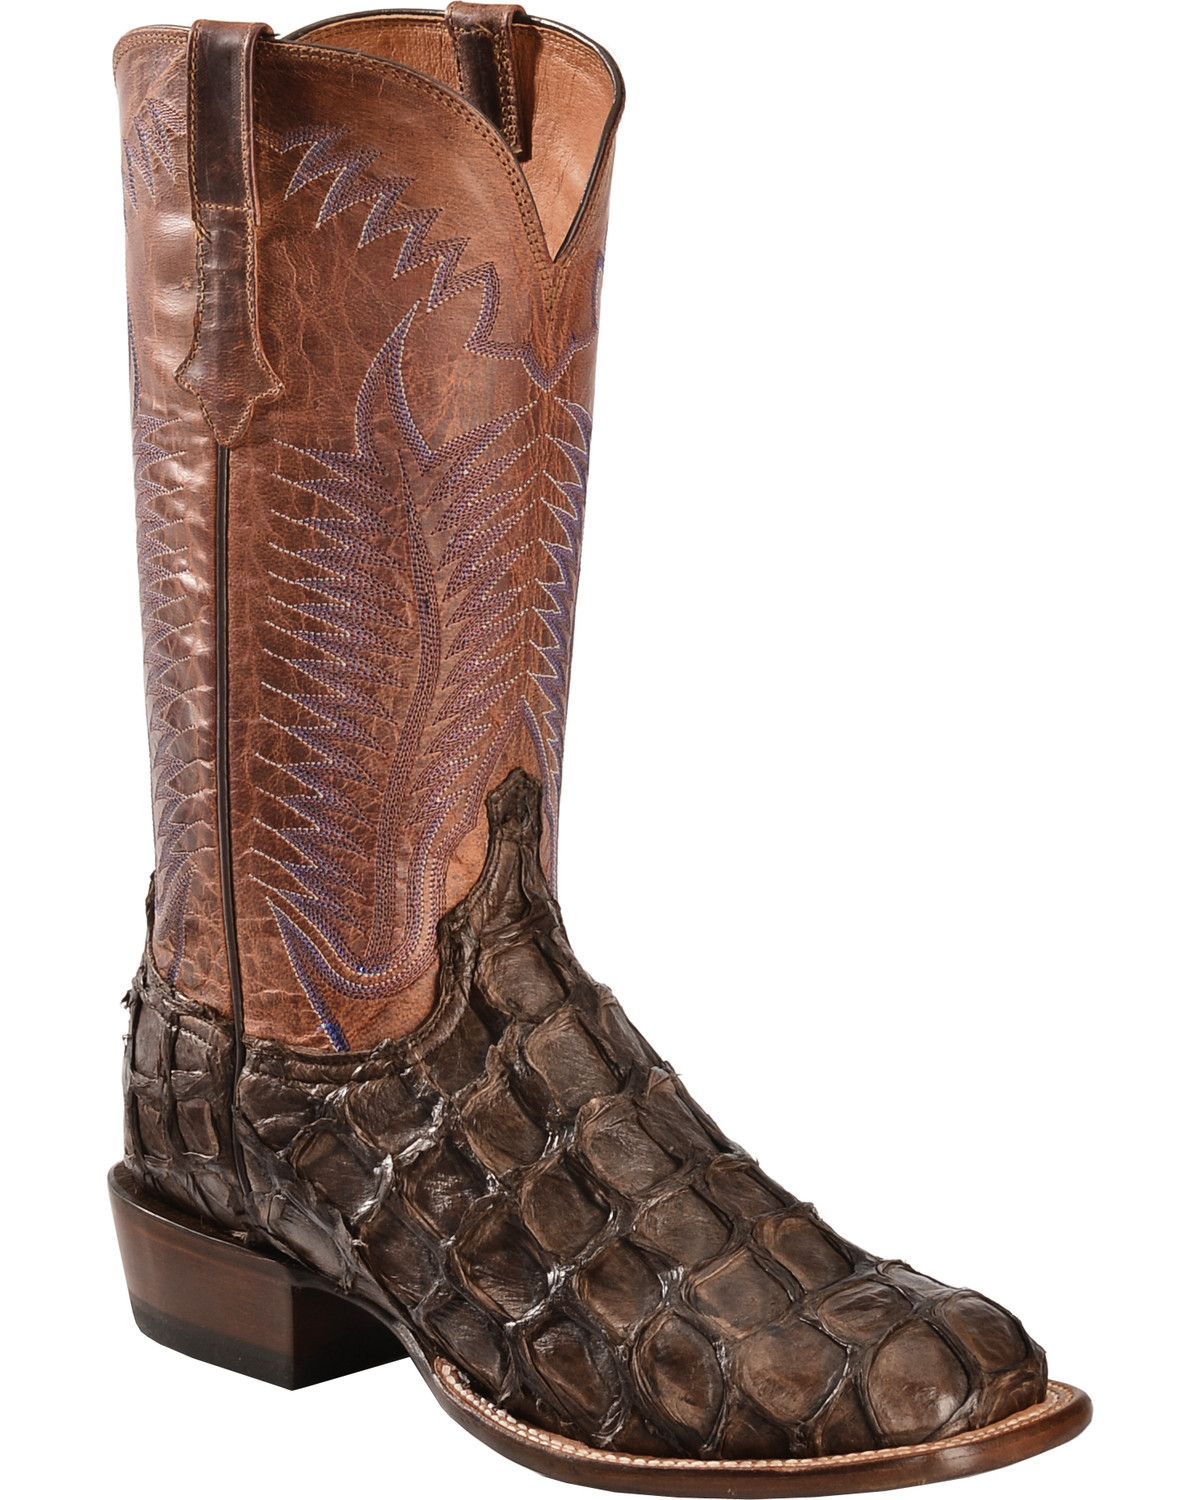 069ddbf9d3c Lucchese Handmade Chocolate Brown Brooks Pirarucu Cowboy Boots - Square Toe